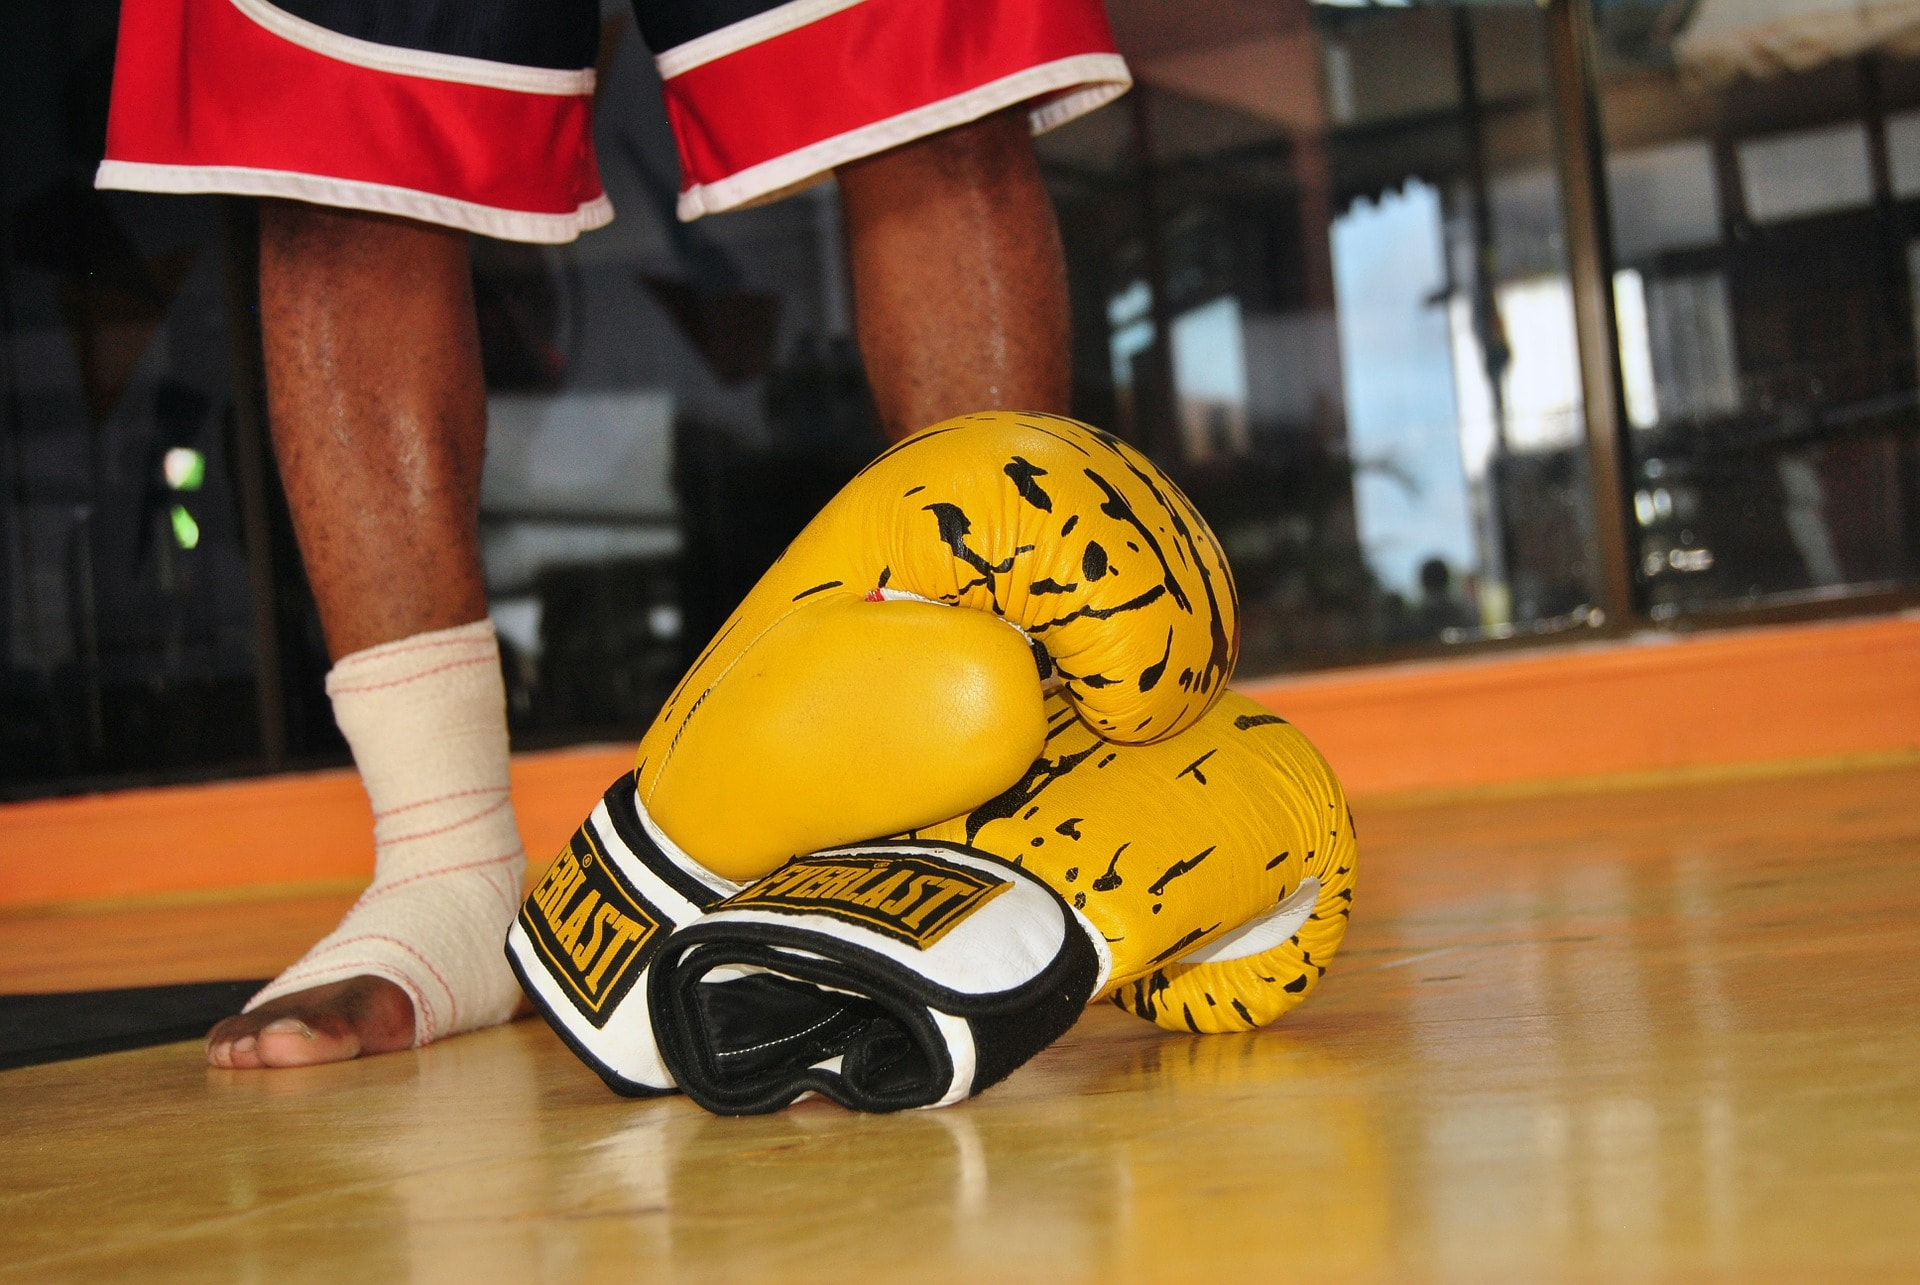 Boxing gloves in a boxing ring.